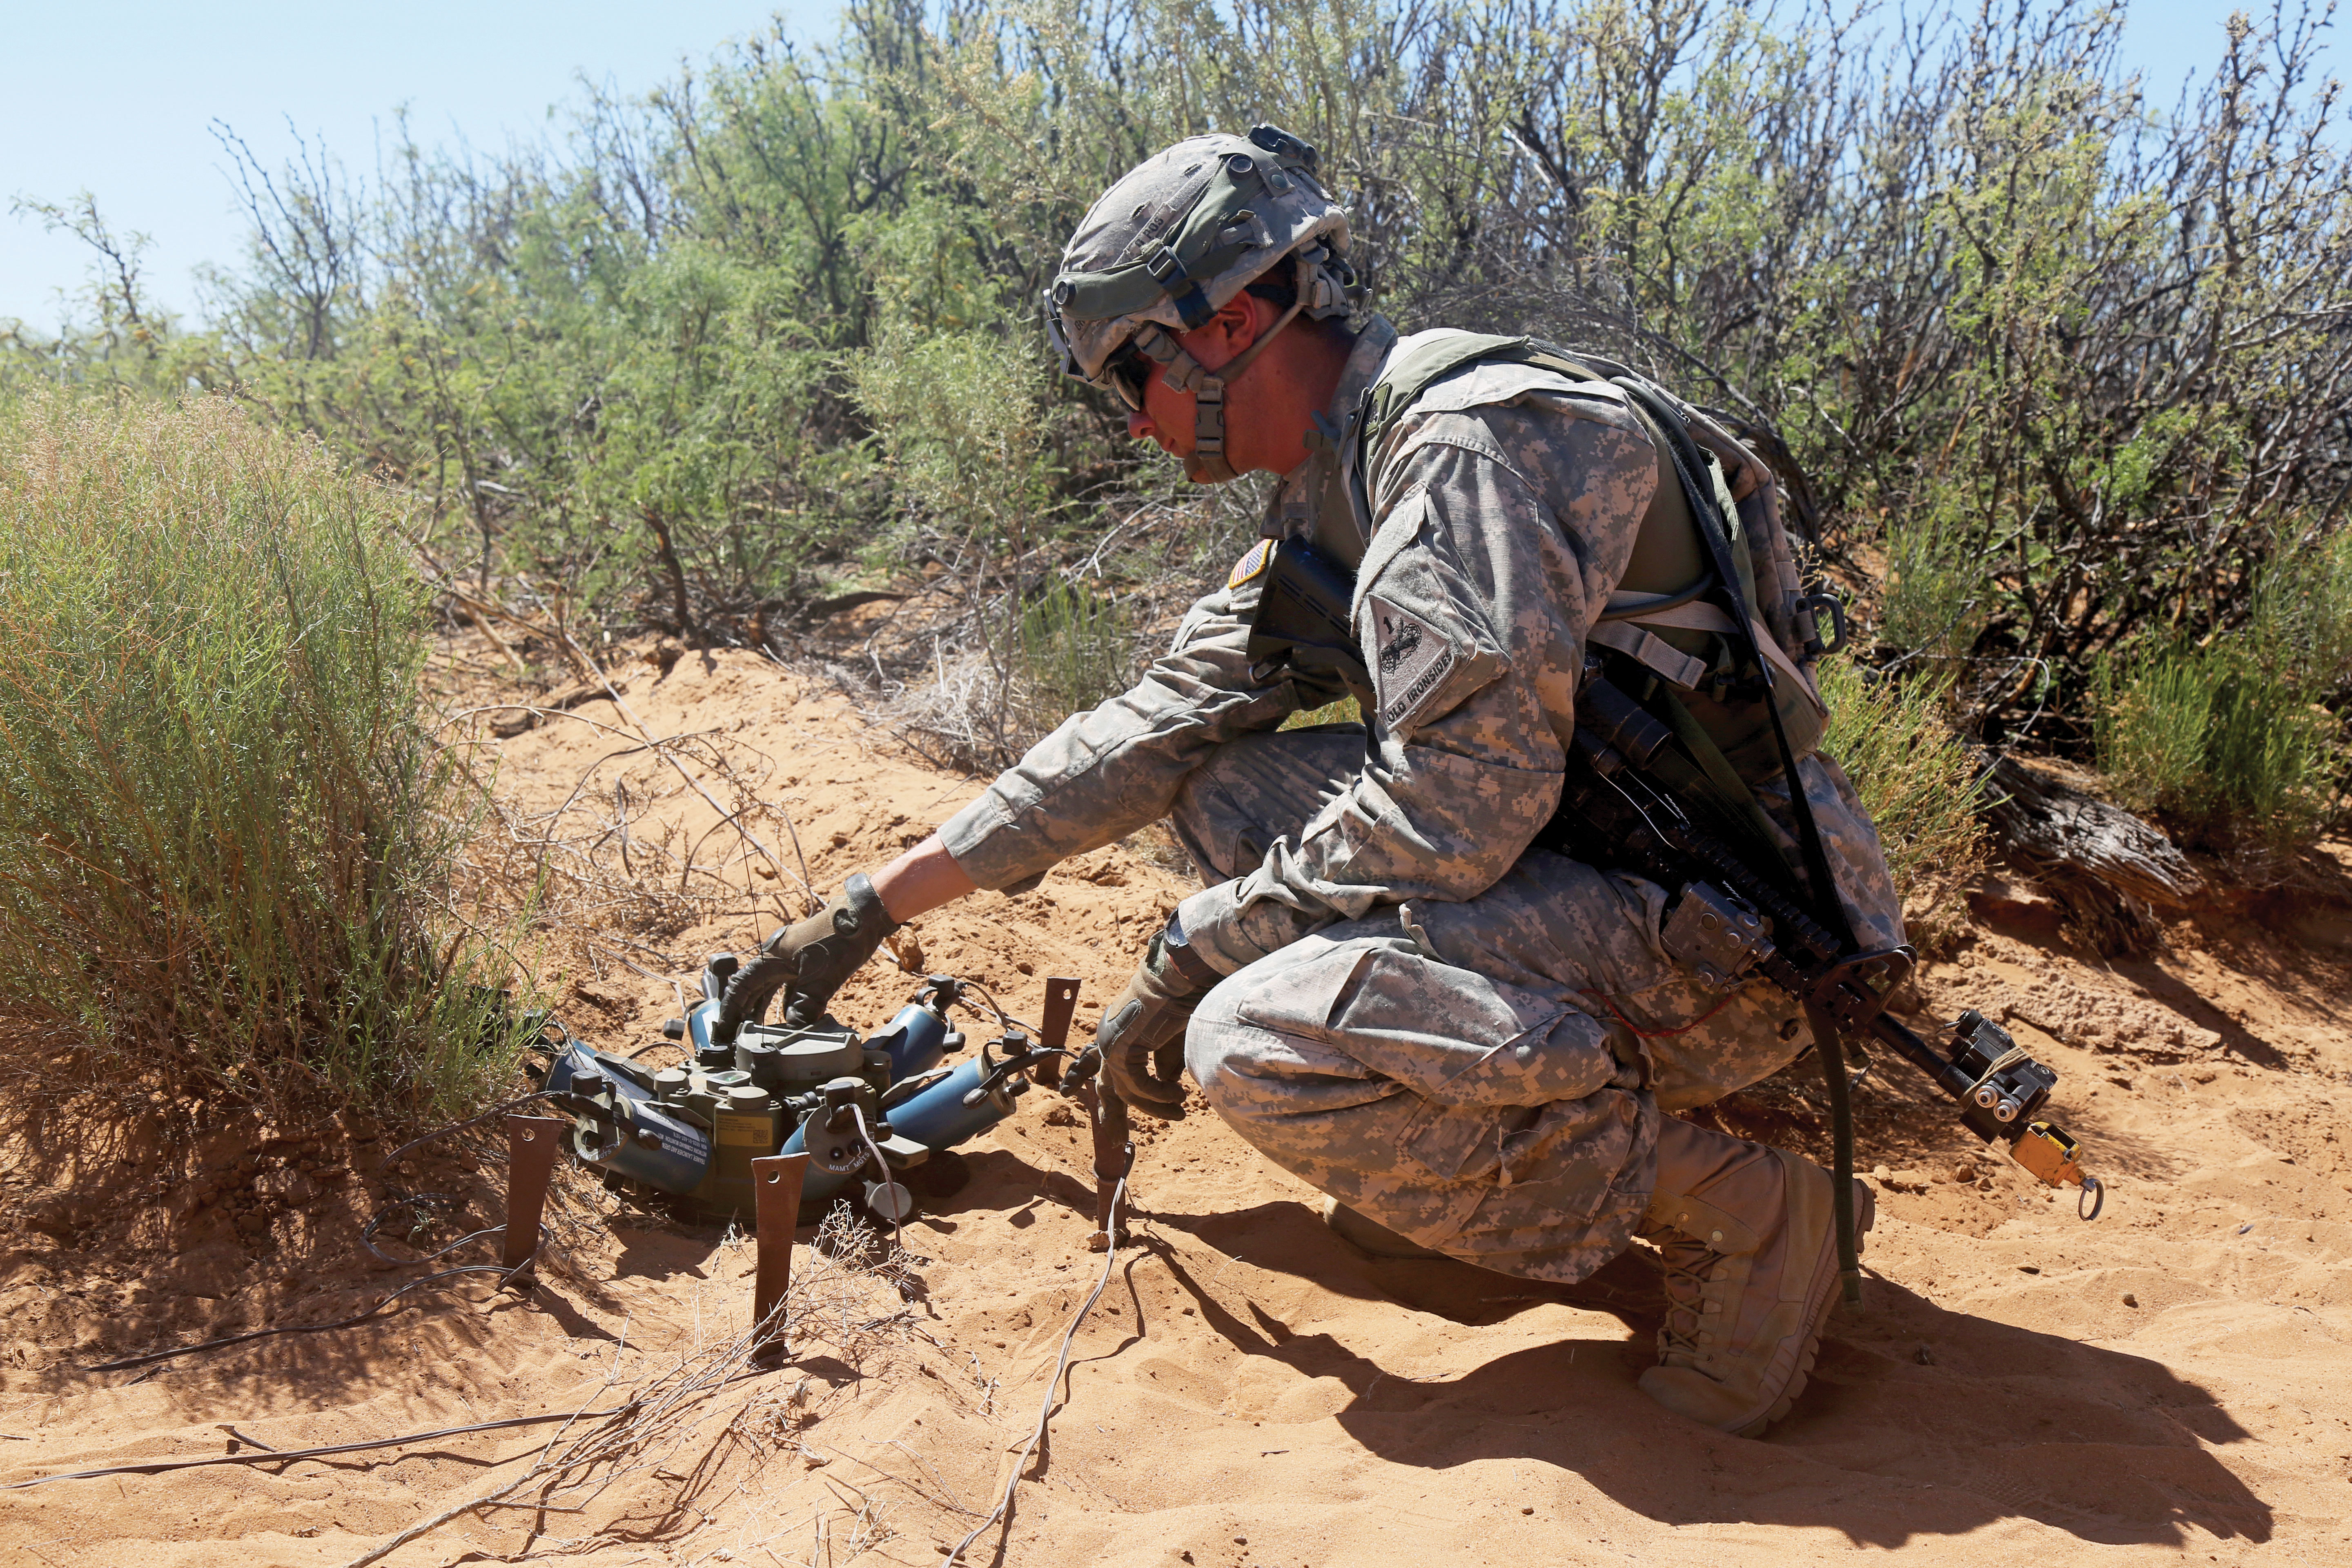 The Spider represents a partial solution to problems created by mines left on the battlefield after hostilities end; PEO Ammunition, DARPA and a handful of companies and government agencies are working to solve the problem completely. (Cheneé Brooks, US Army)